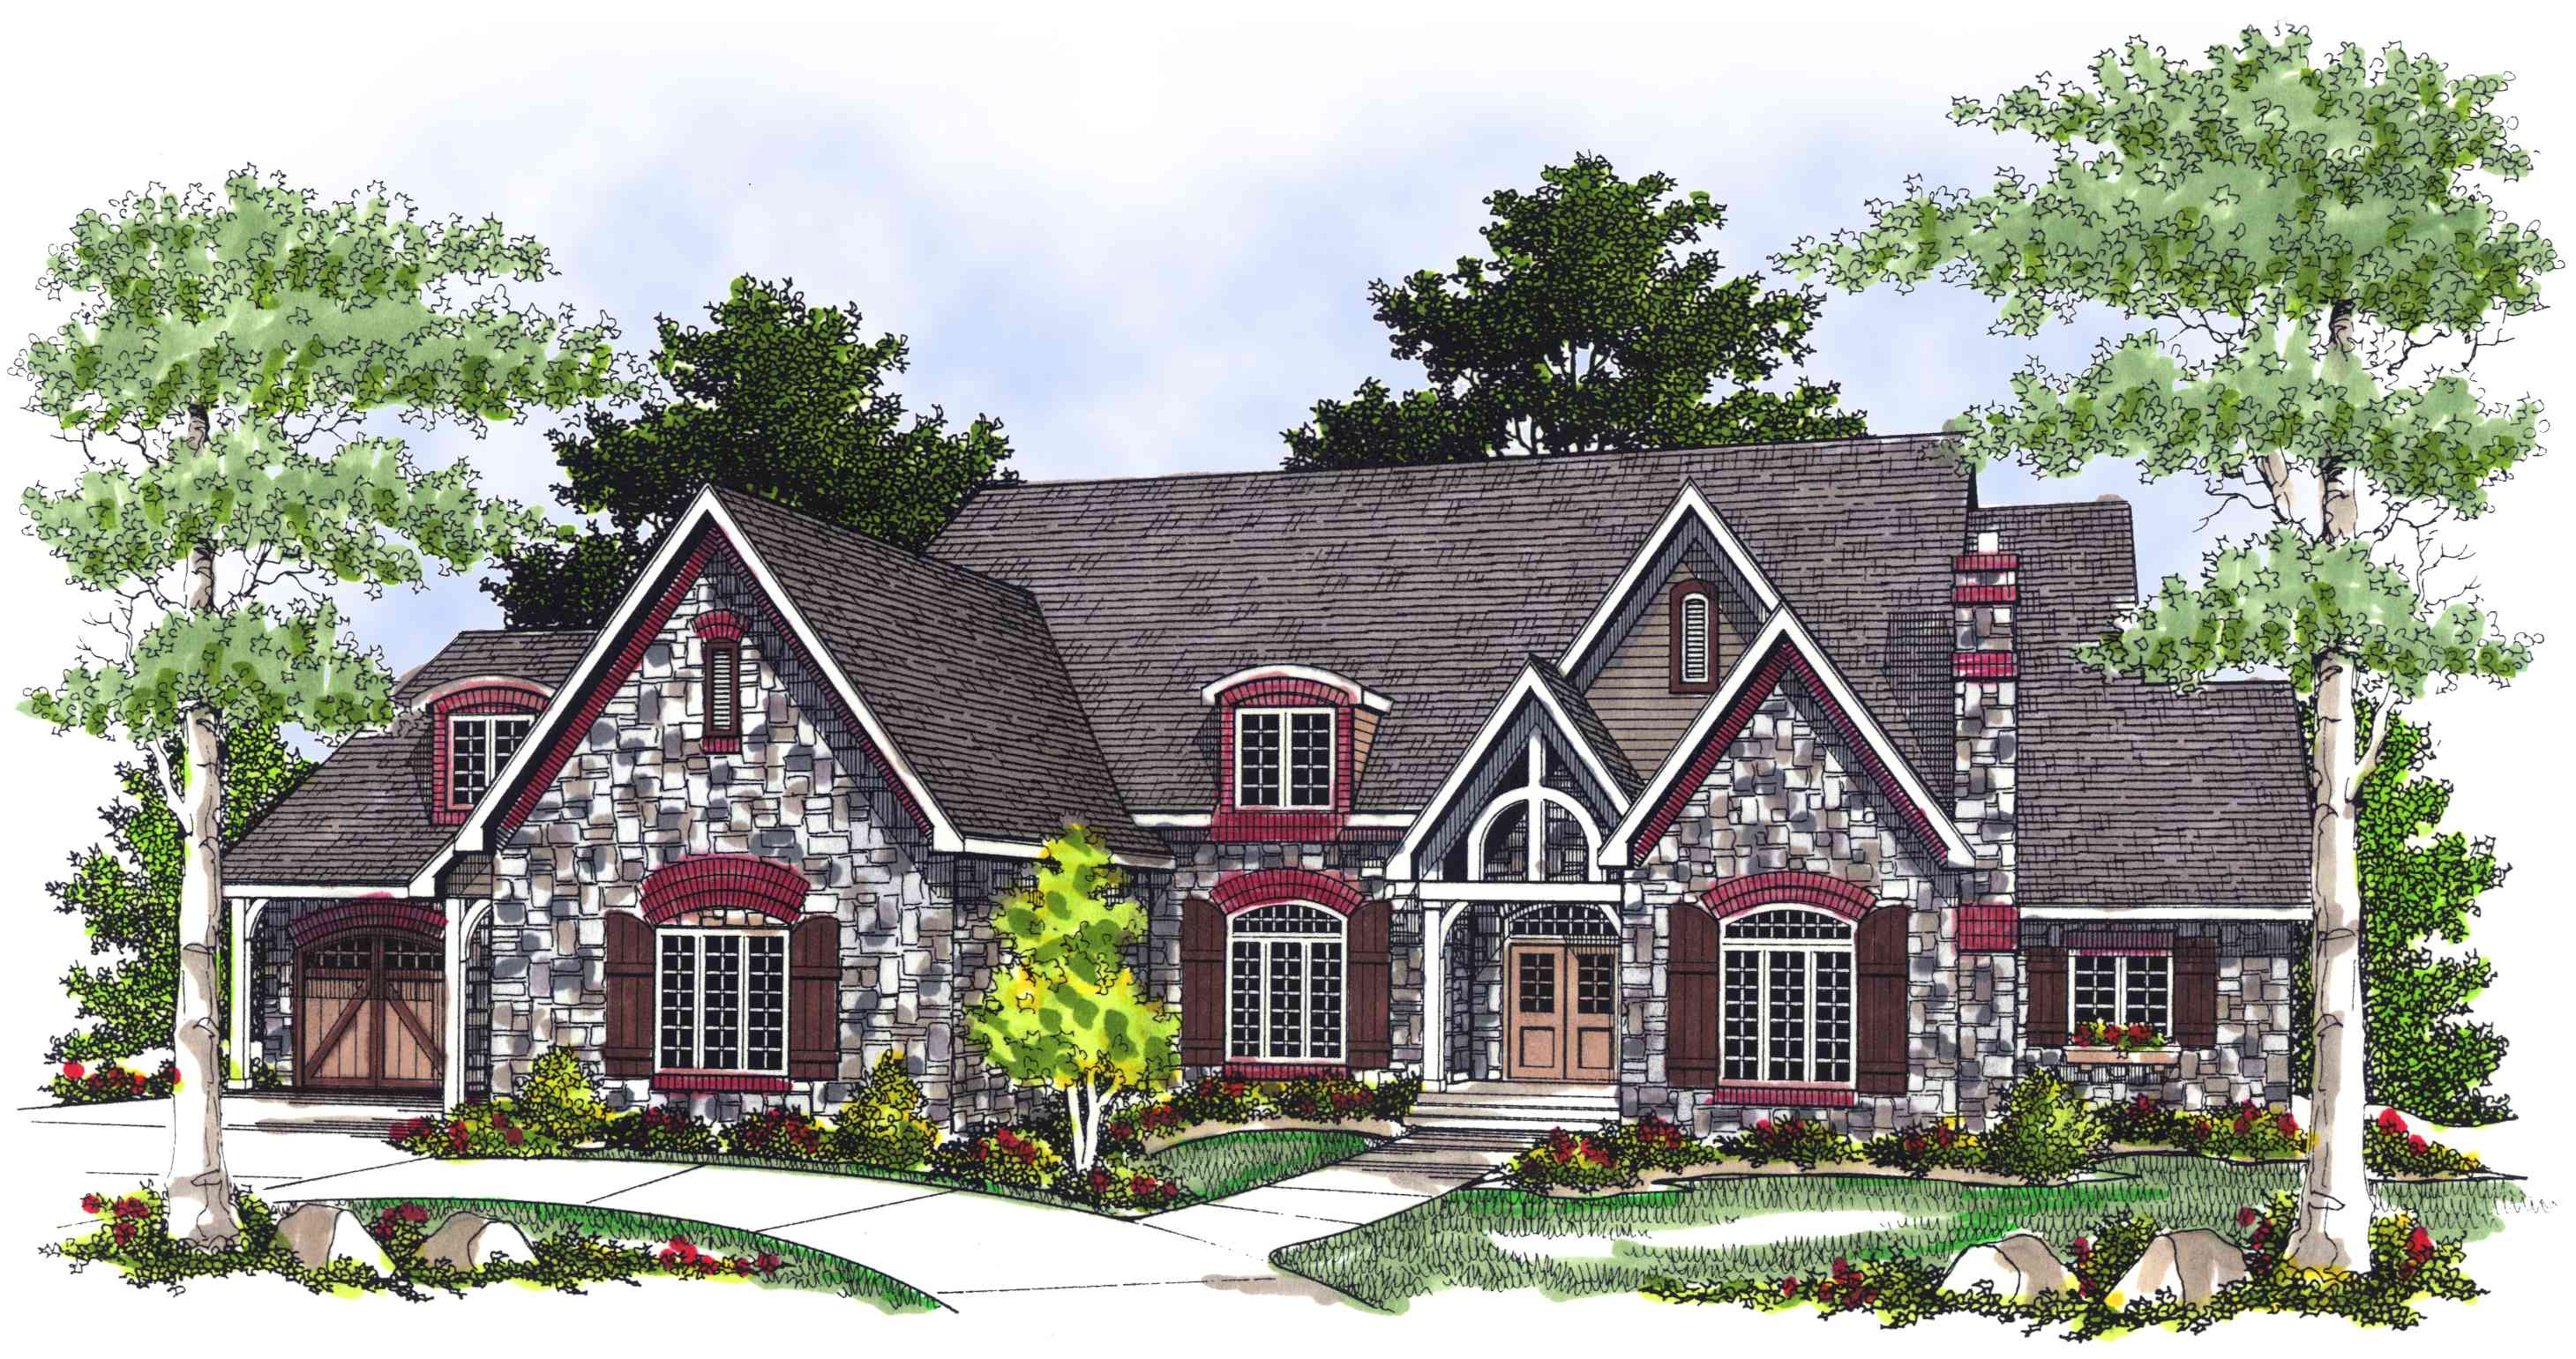 Stunning French Country House Plan - 89407ah 1st Floor